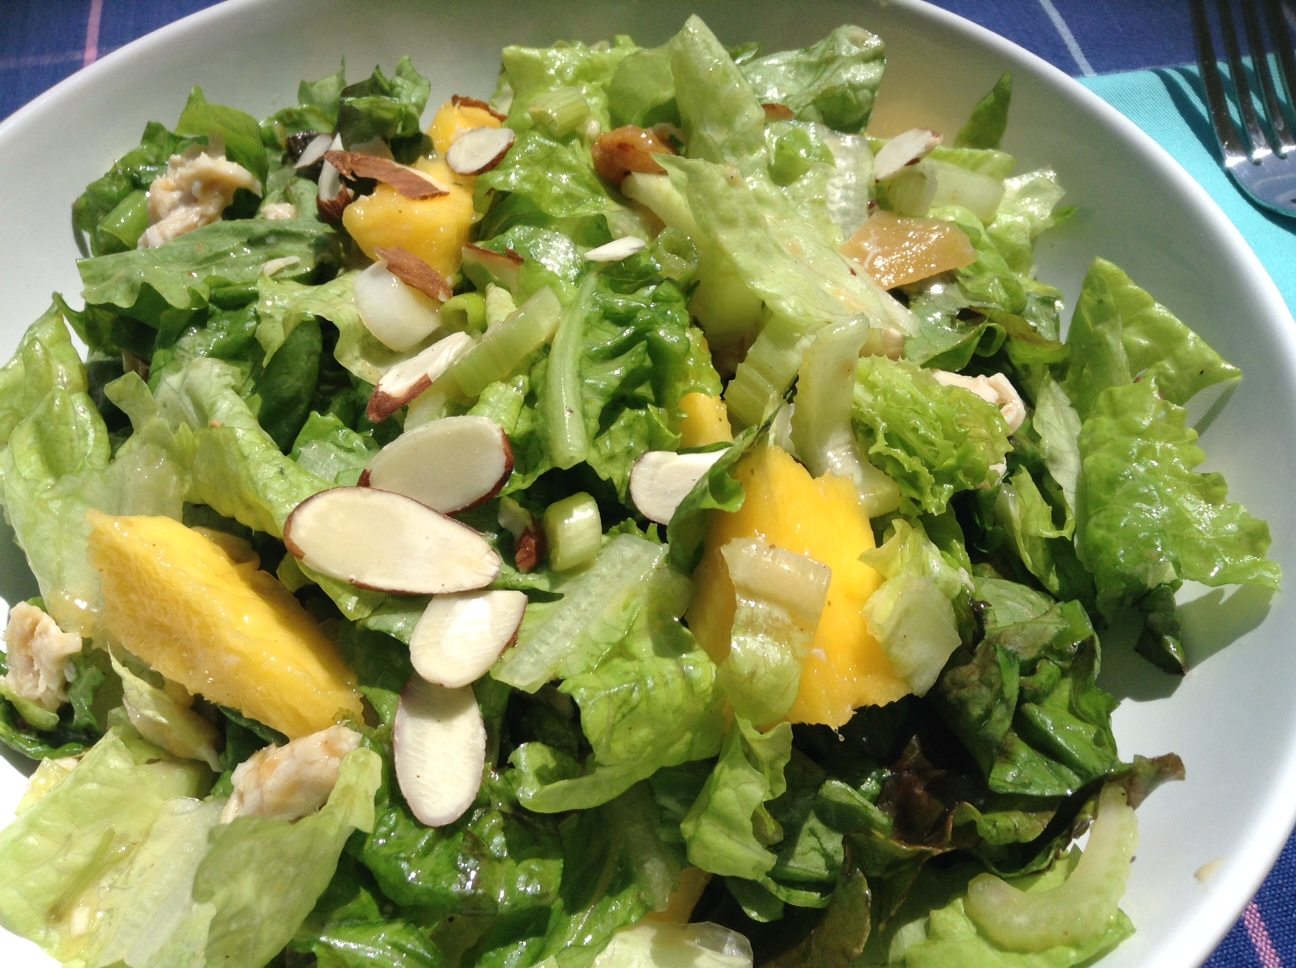 This is  great summer salad that's easy, tasty and good for you too.